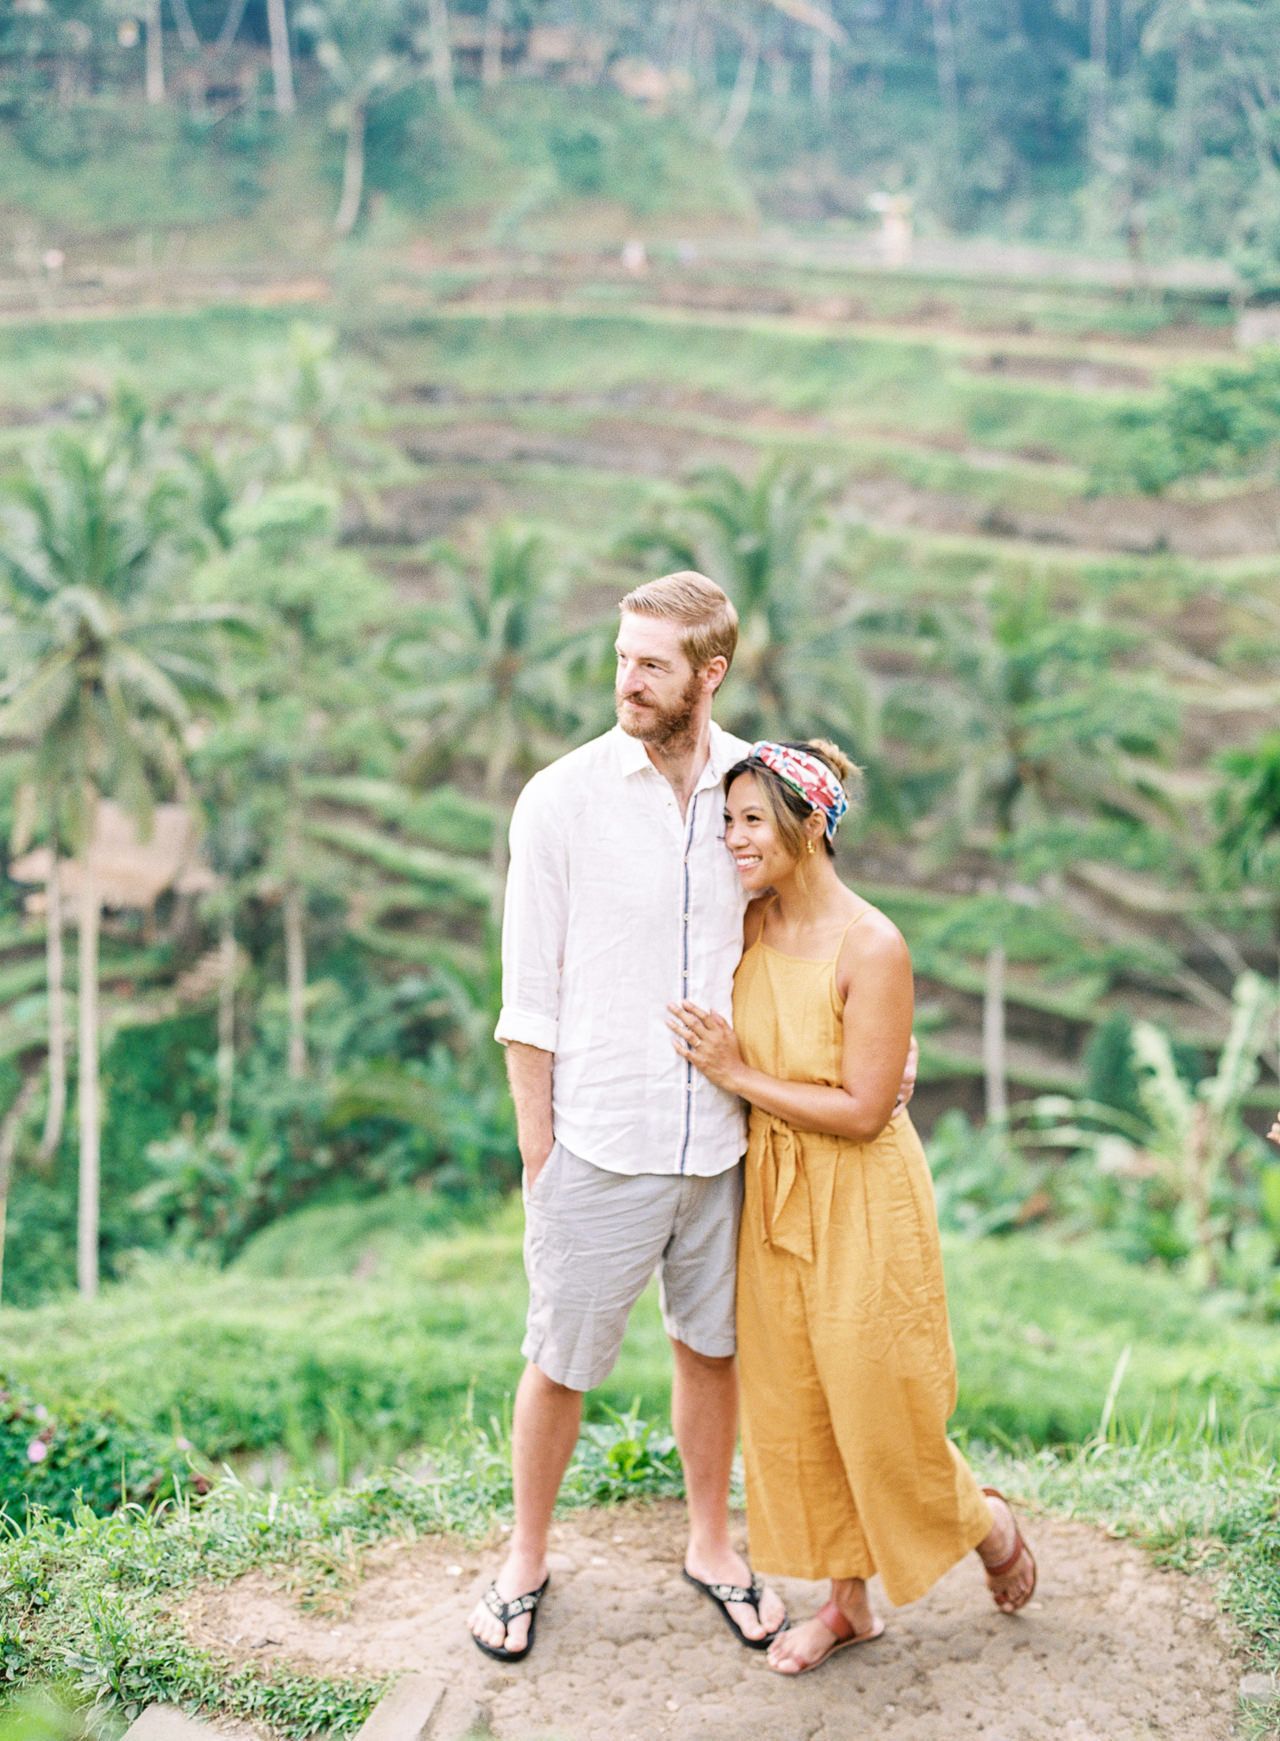 S&M: Bali Wedding Anniversary Photography 6